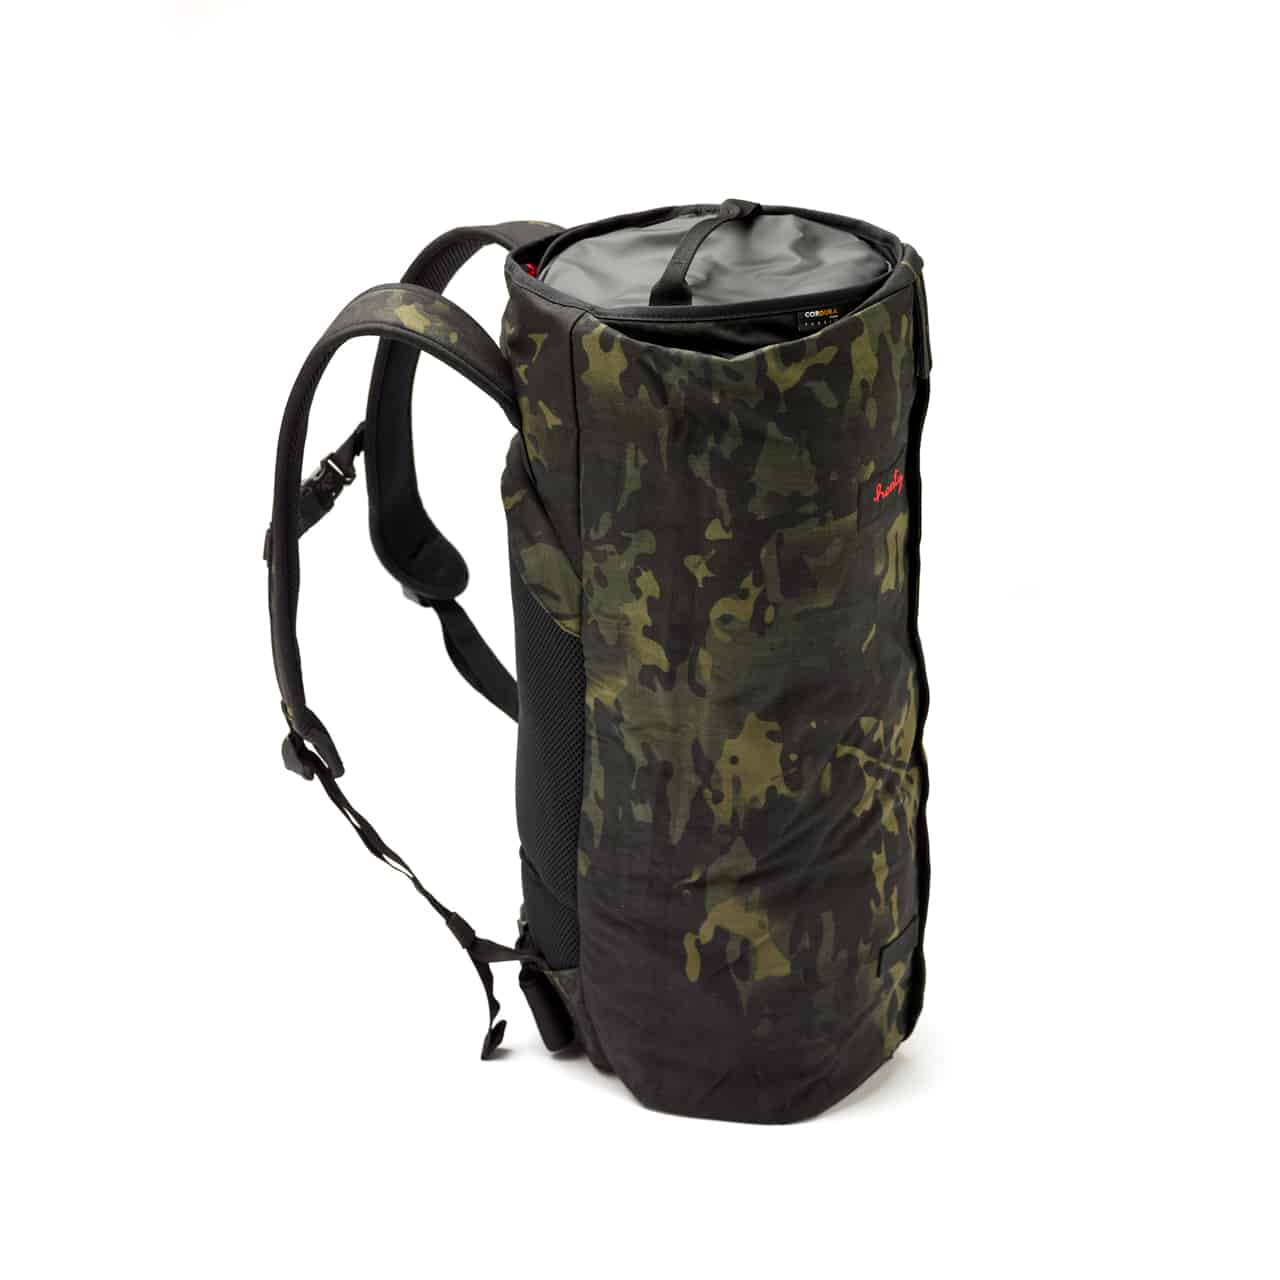 2cdd3434b9 CoPilot Backpack Camo (LIMITED EDITION) - Henty